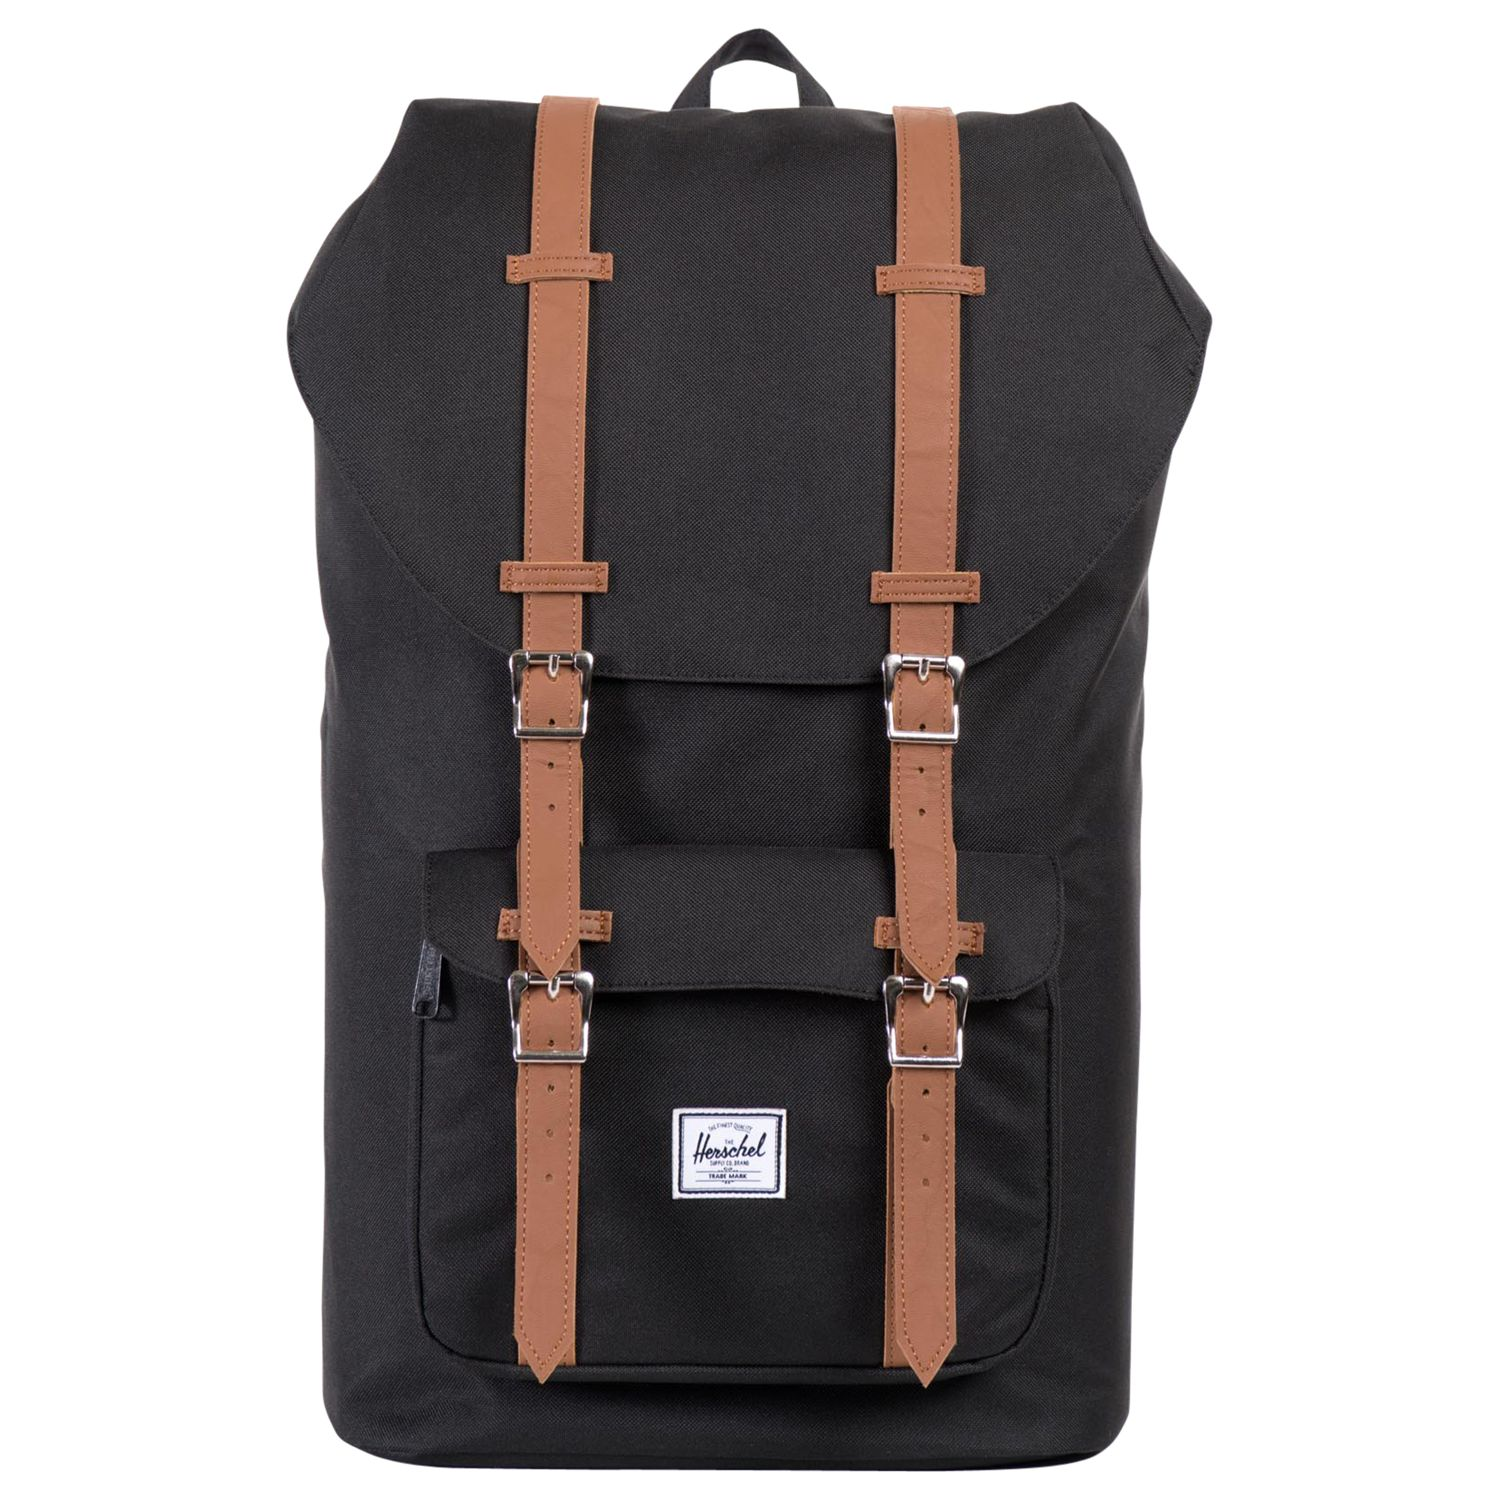 Herschel Supply Co. Herschel Supply Co. Little America Backpack, Black